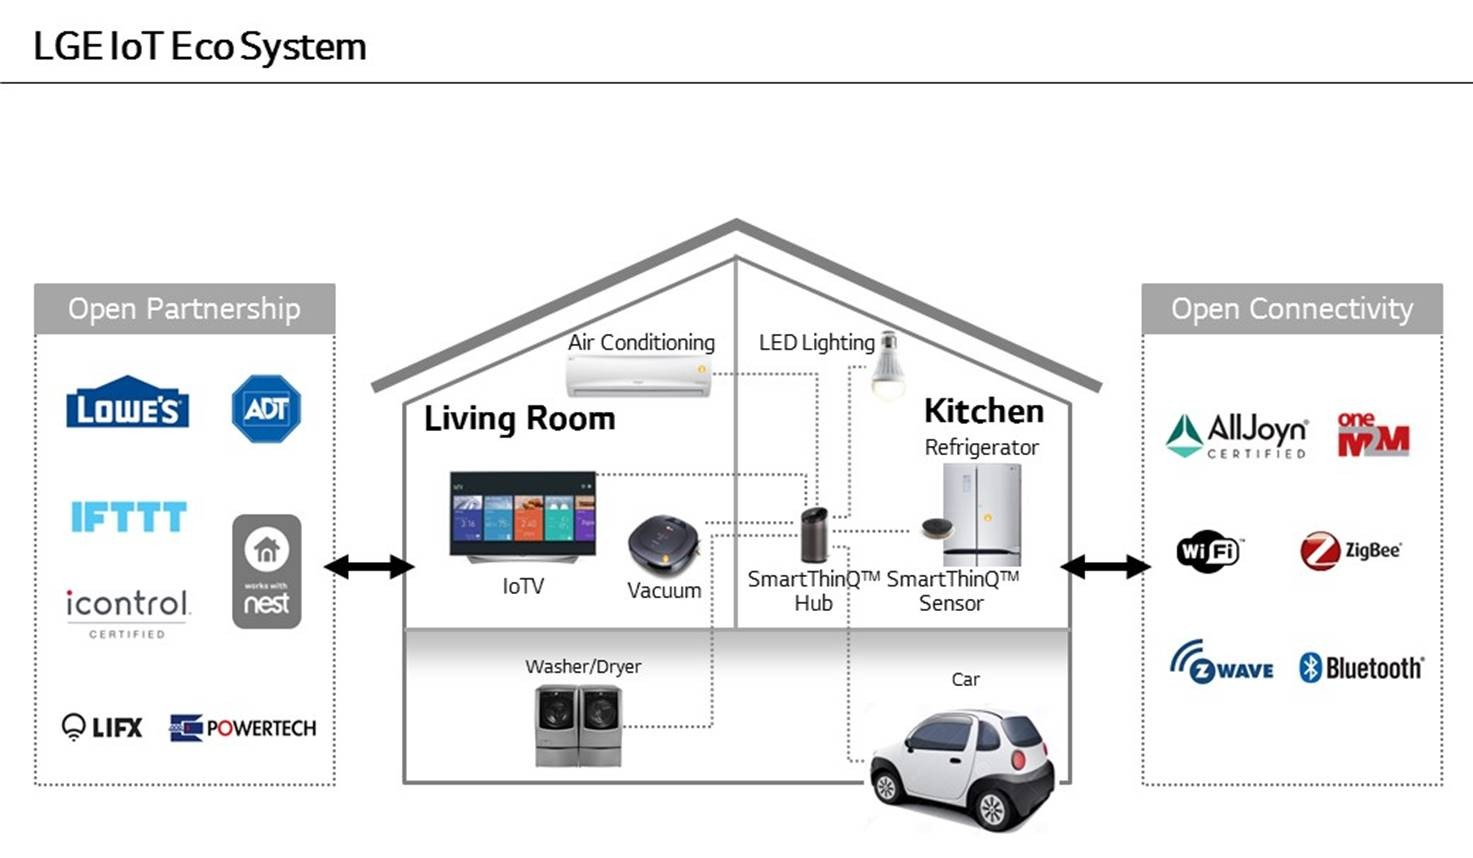 Lg Advances Smart Home Ecosystem With Smartthinq Hub At